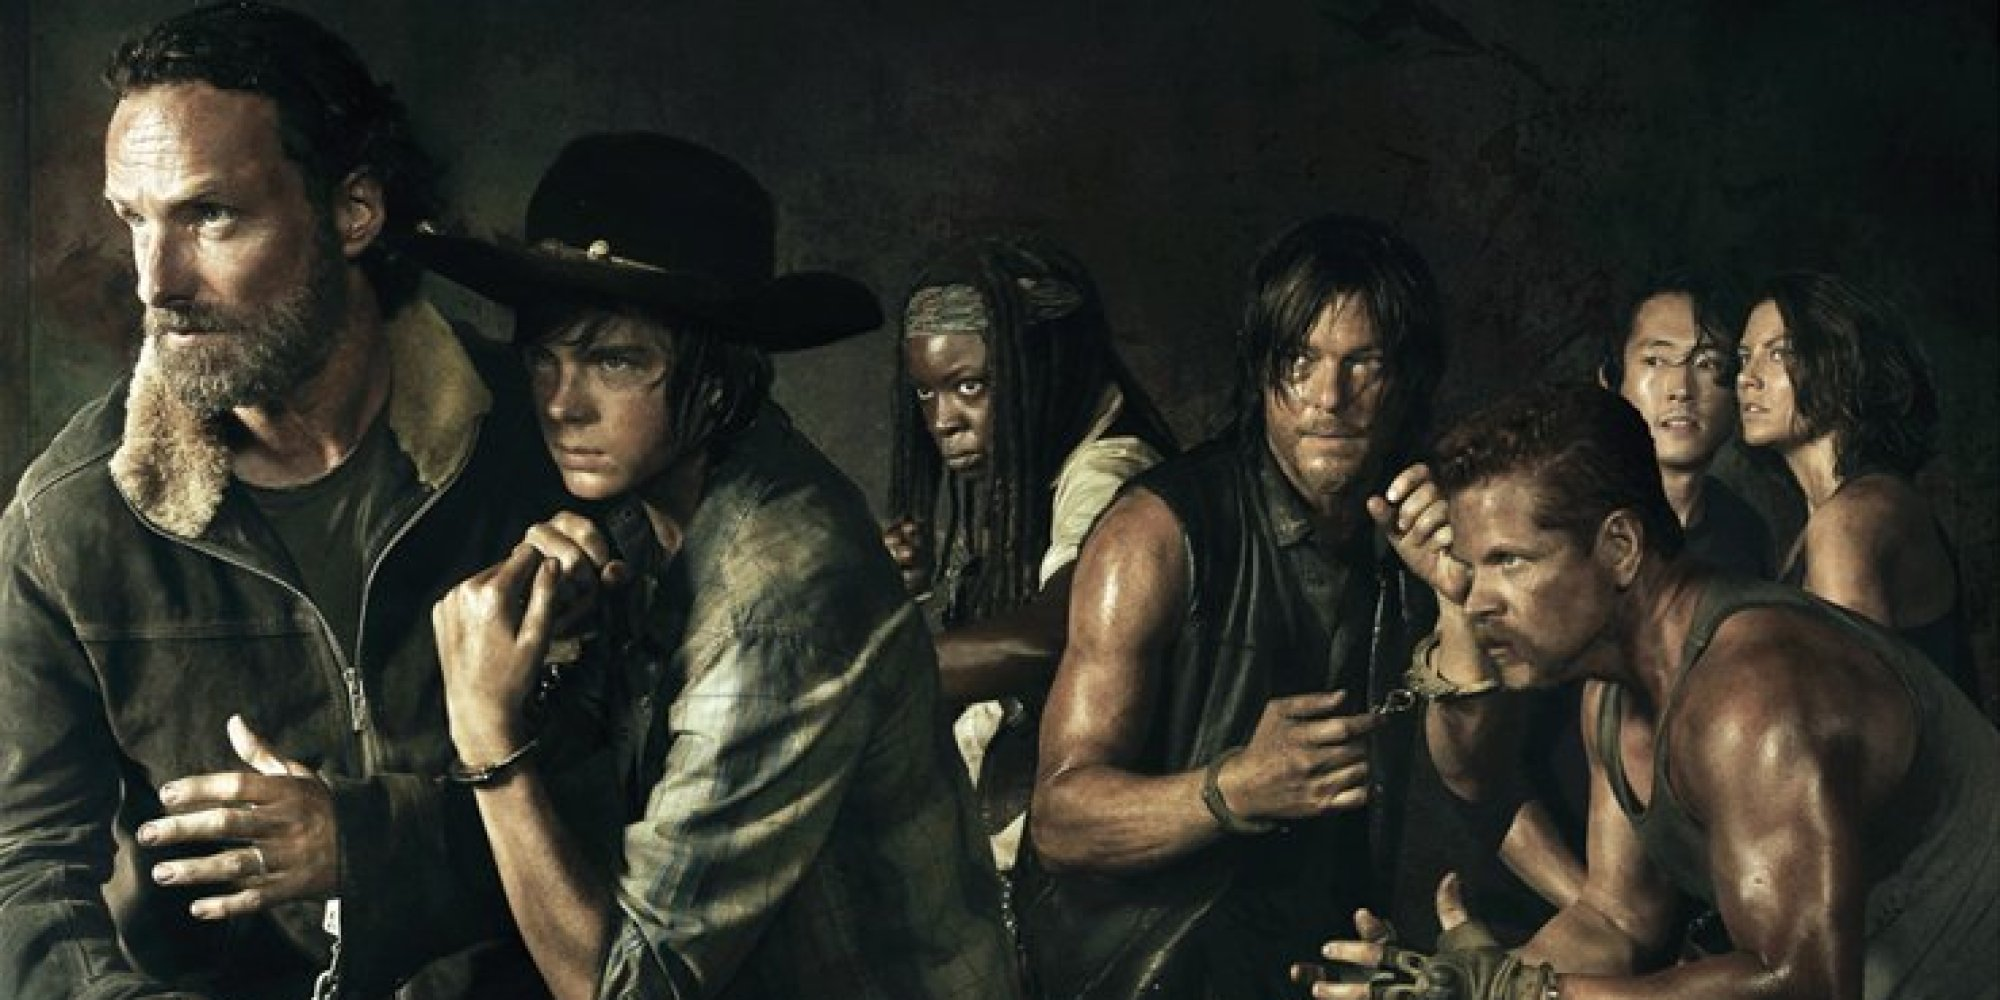 The Walking Dead Season 5 (Part 2) Trailer: Yetis Vs. Zombies